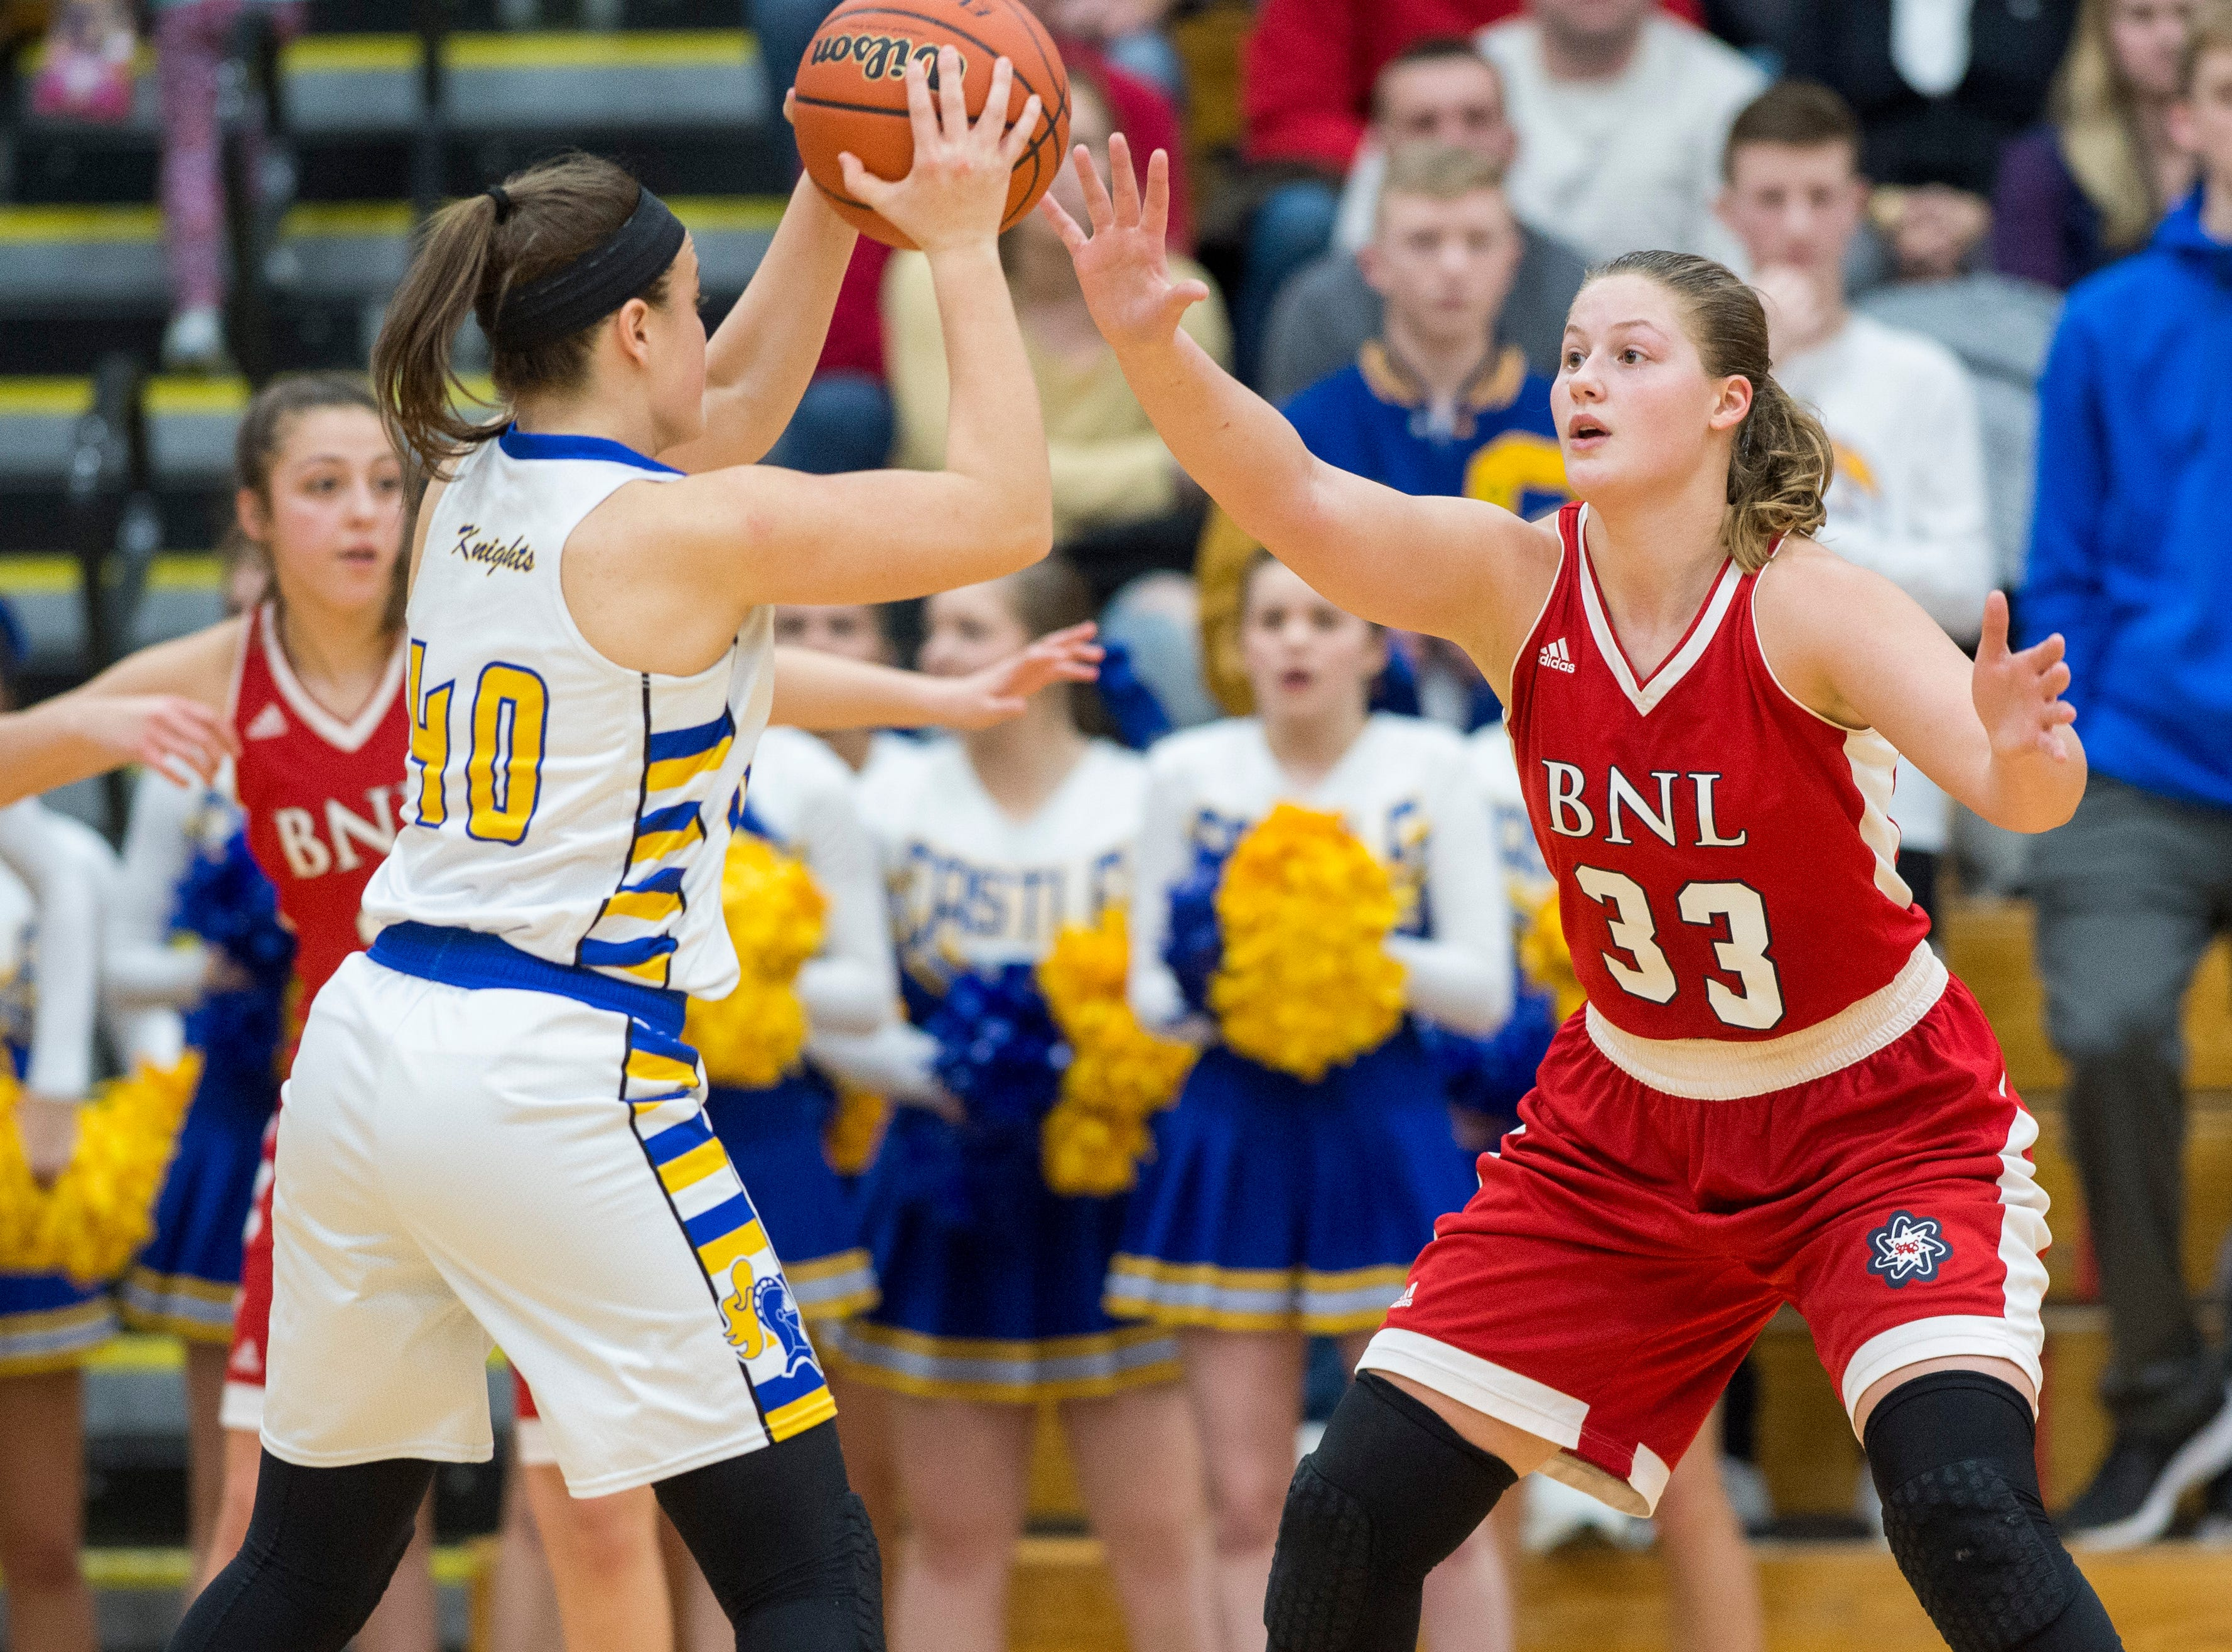 Bedford North Lawrence's Jorie Allen (33) guards Castle's Mckenna Tutt (40) during the IHSAA Girls Basketball Class 4A Regional Championship game against the Castle Knights at the Stars Field House in Bedford, Ind. Saturday, Feb. 9, 2019.